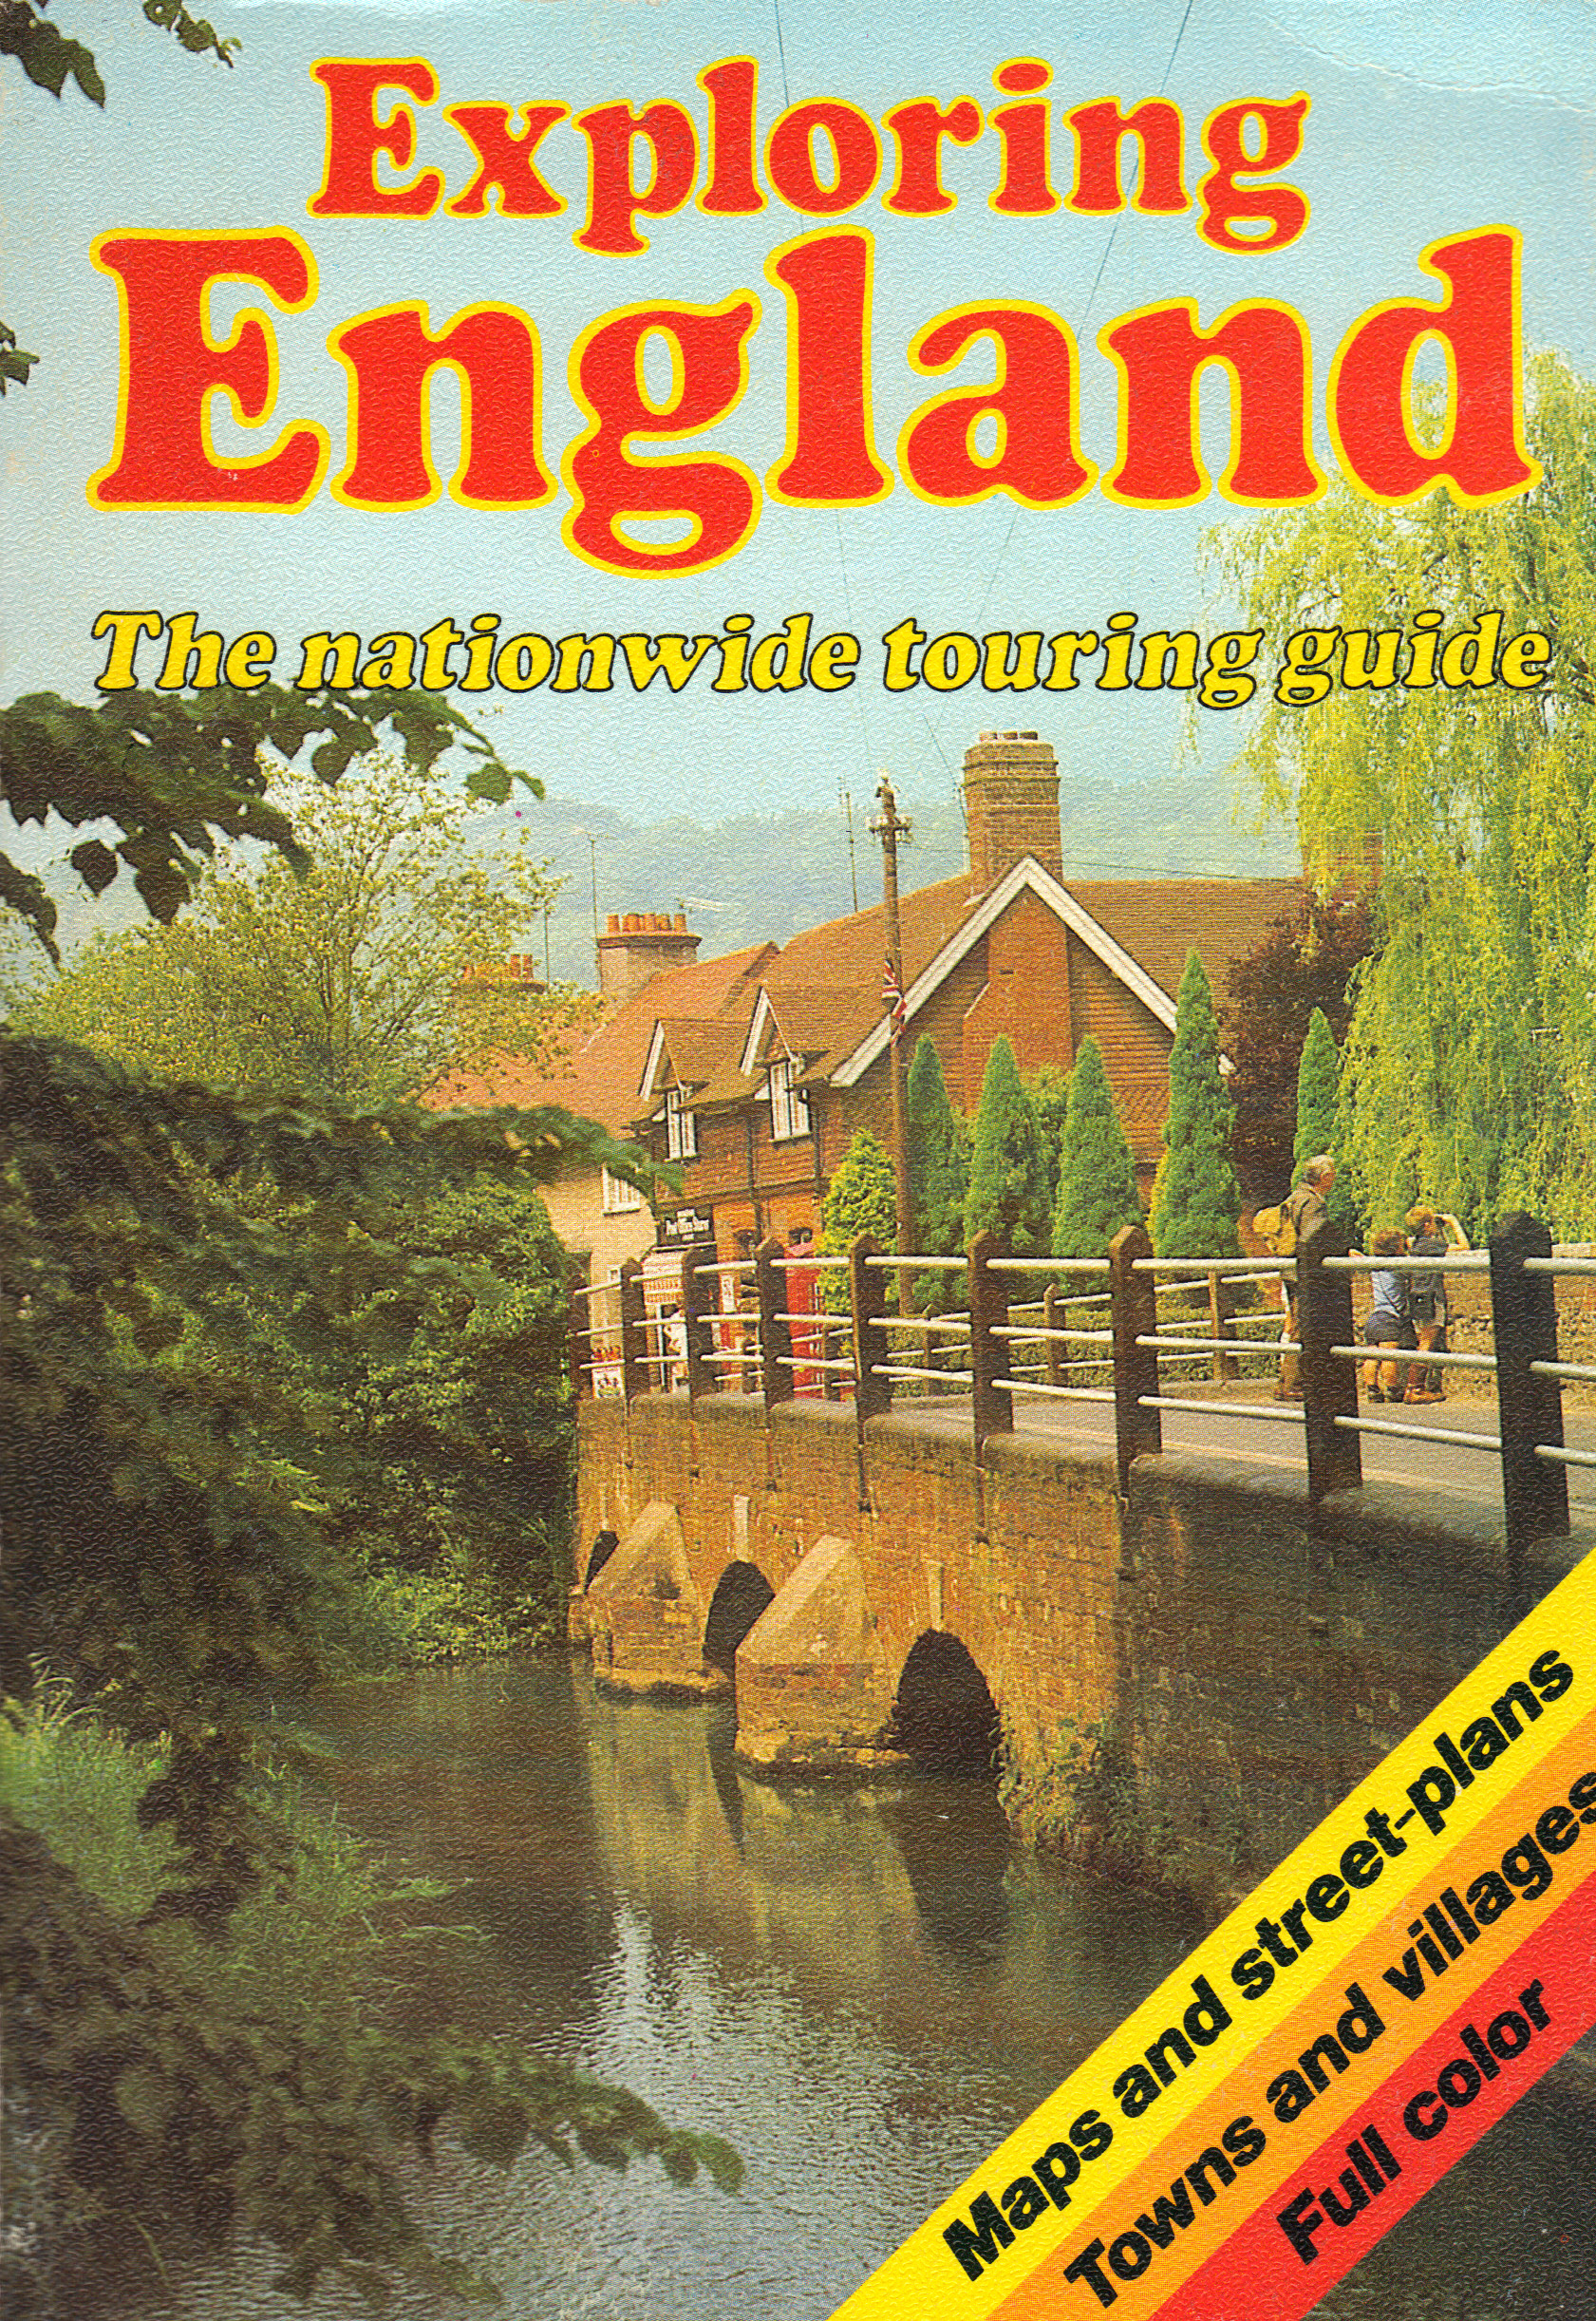 Image for EXPLORING ENGLAND